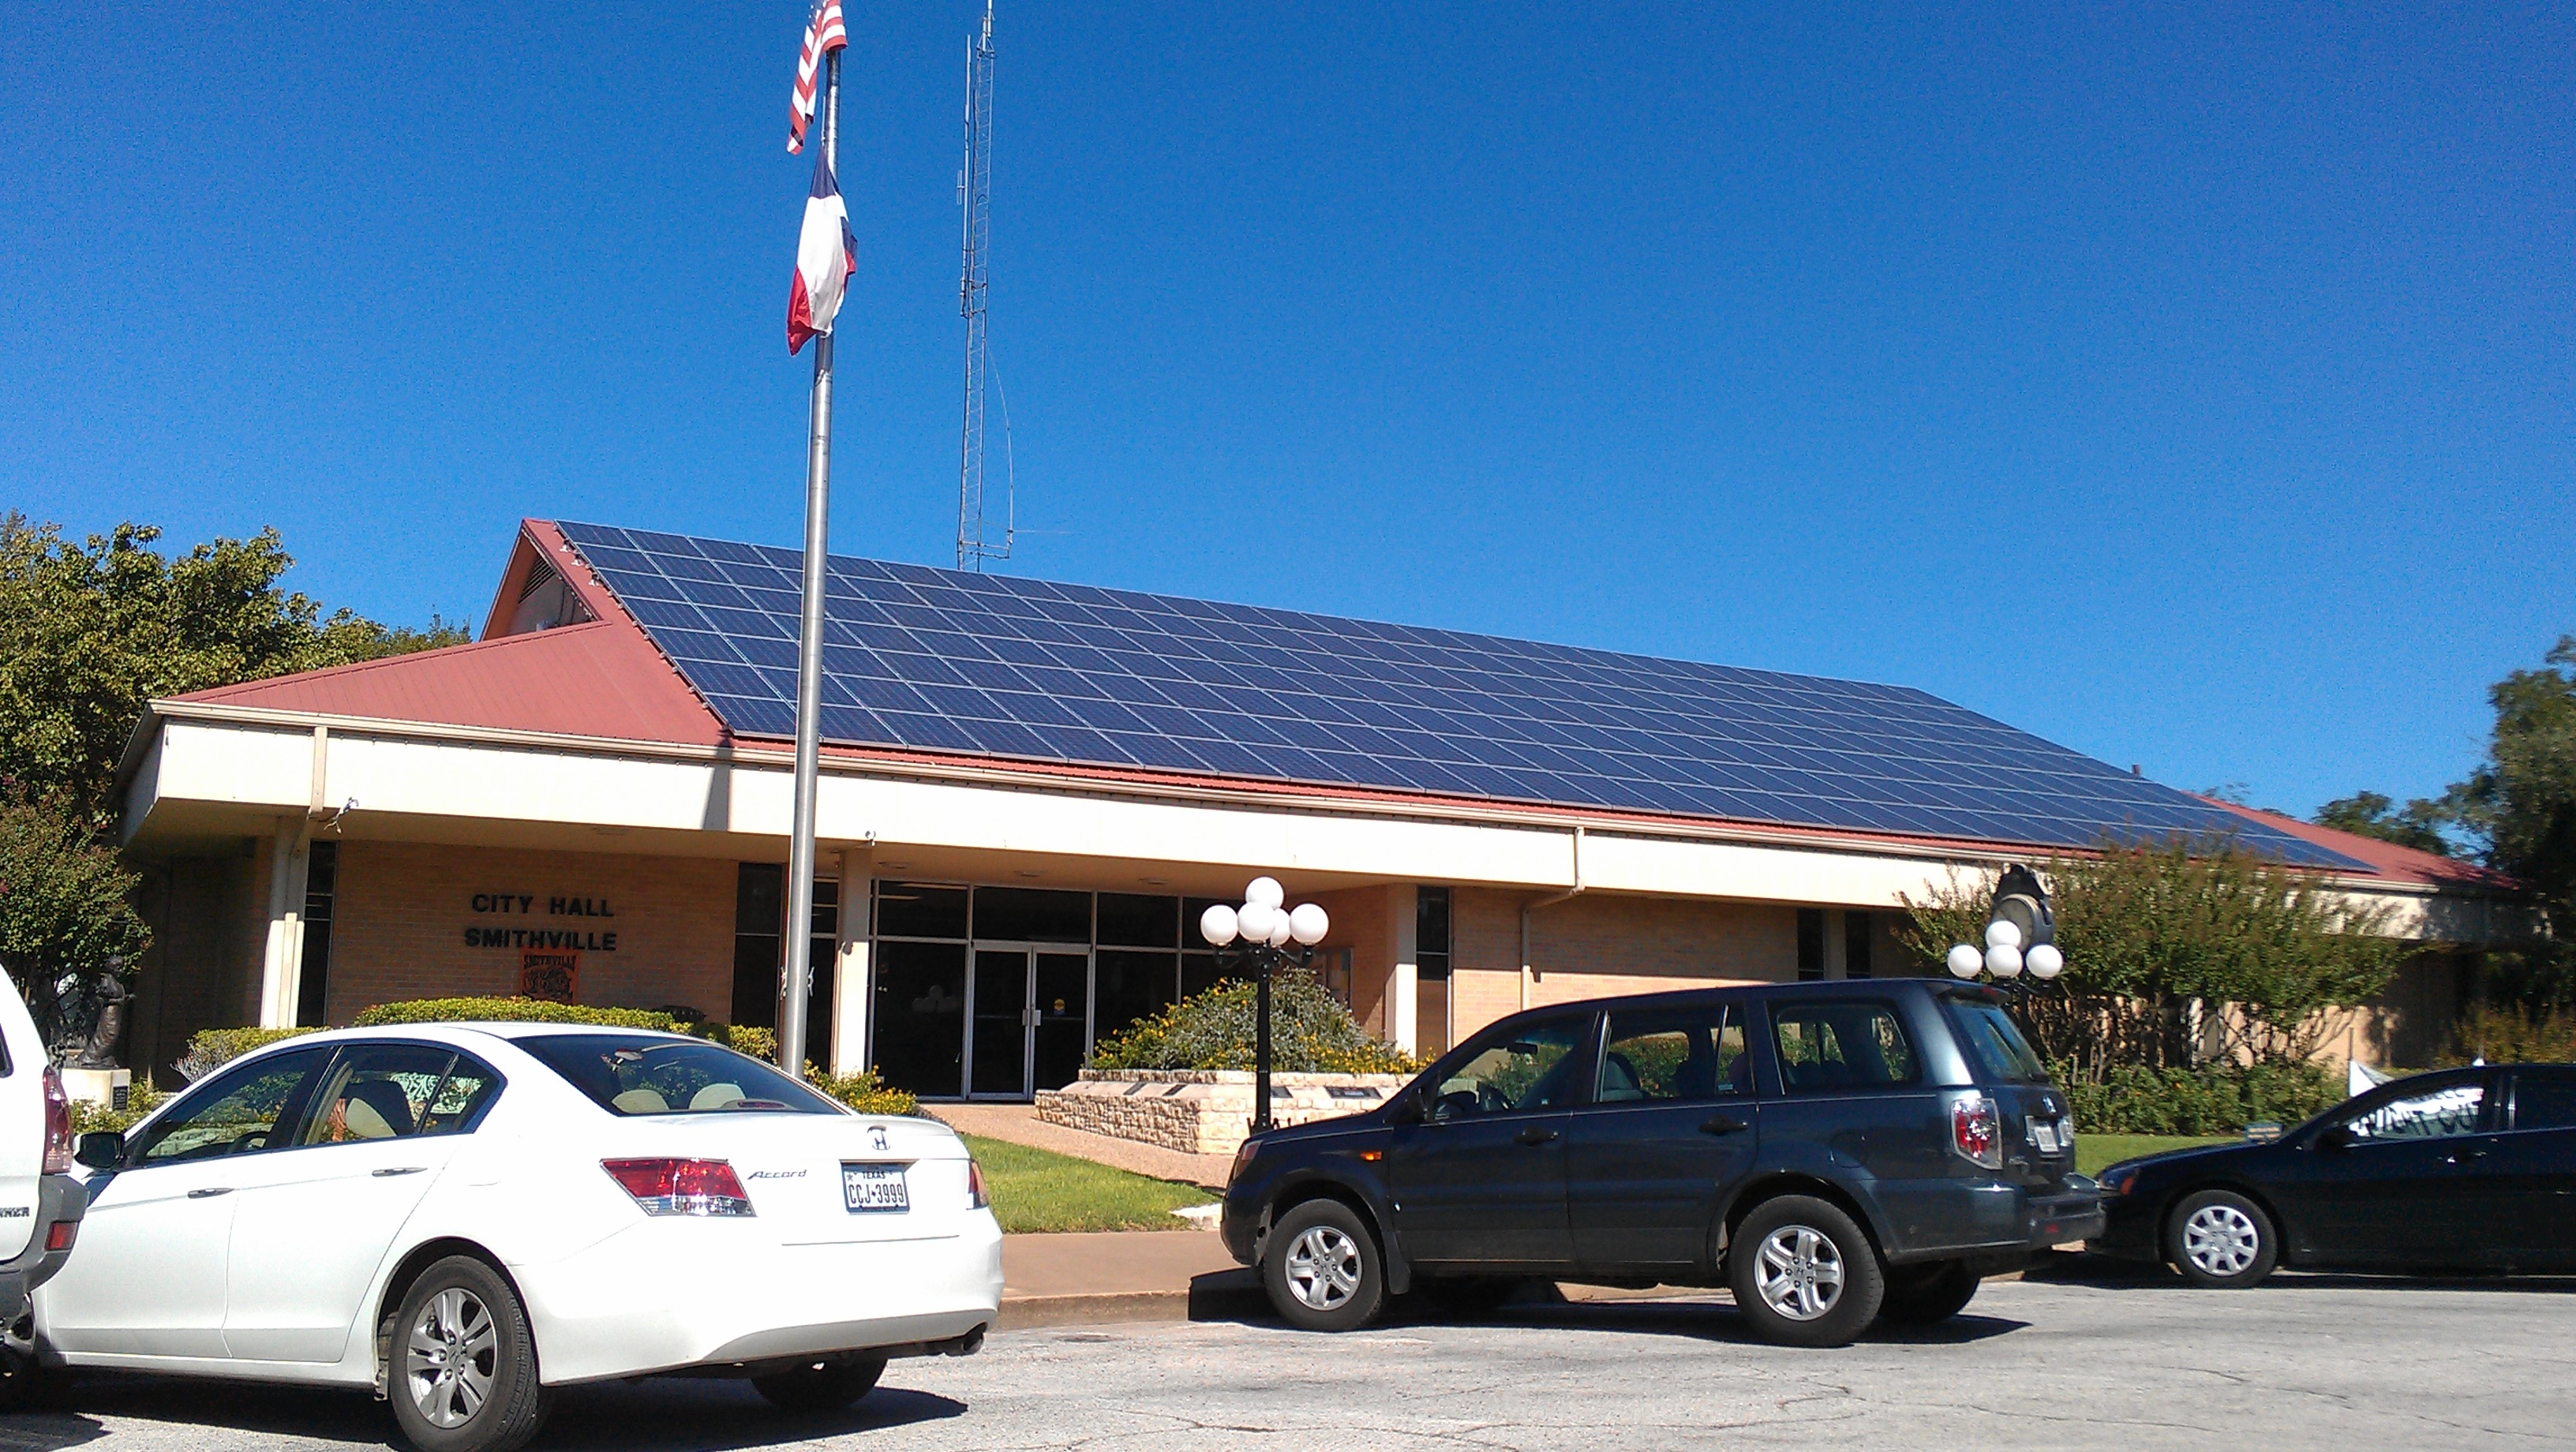 Smithville (TX) United States  city photos : Smithville texas city hall even has gone solar! our sales team has ...